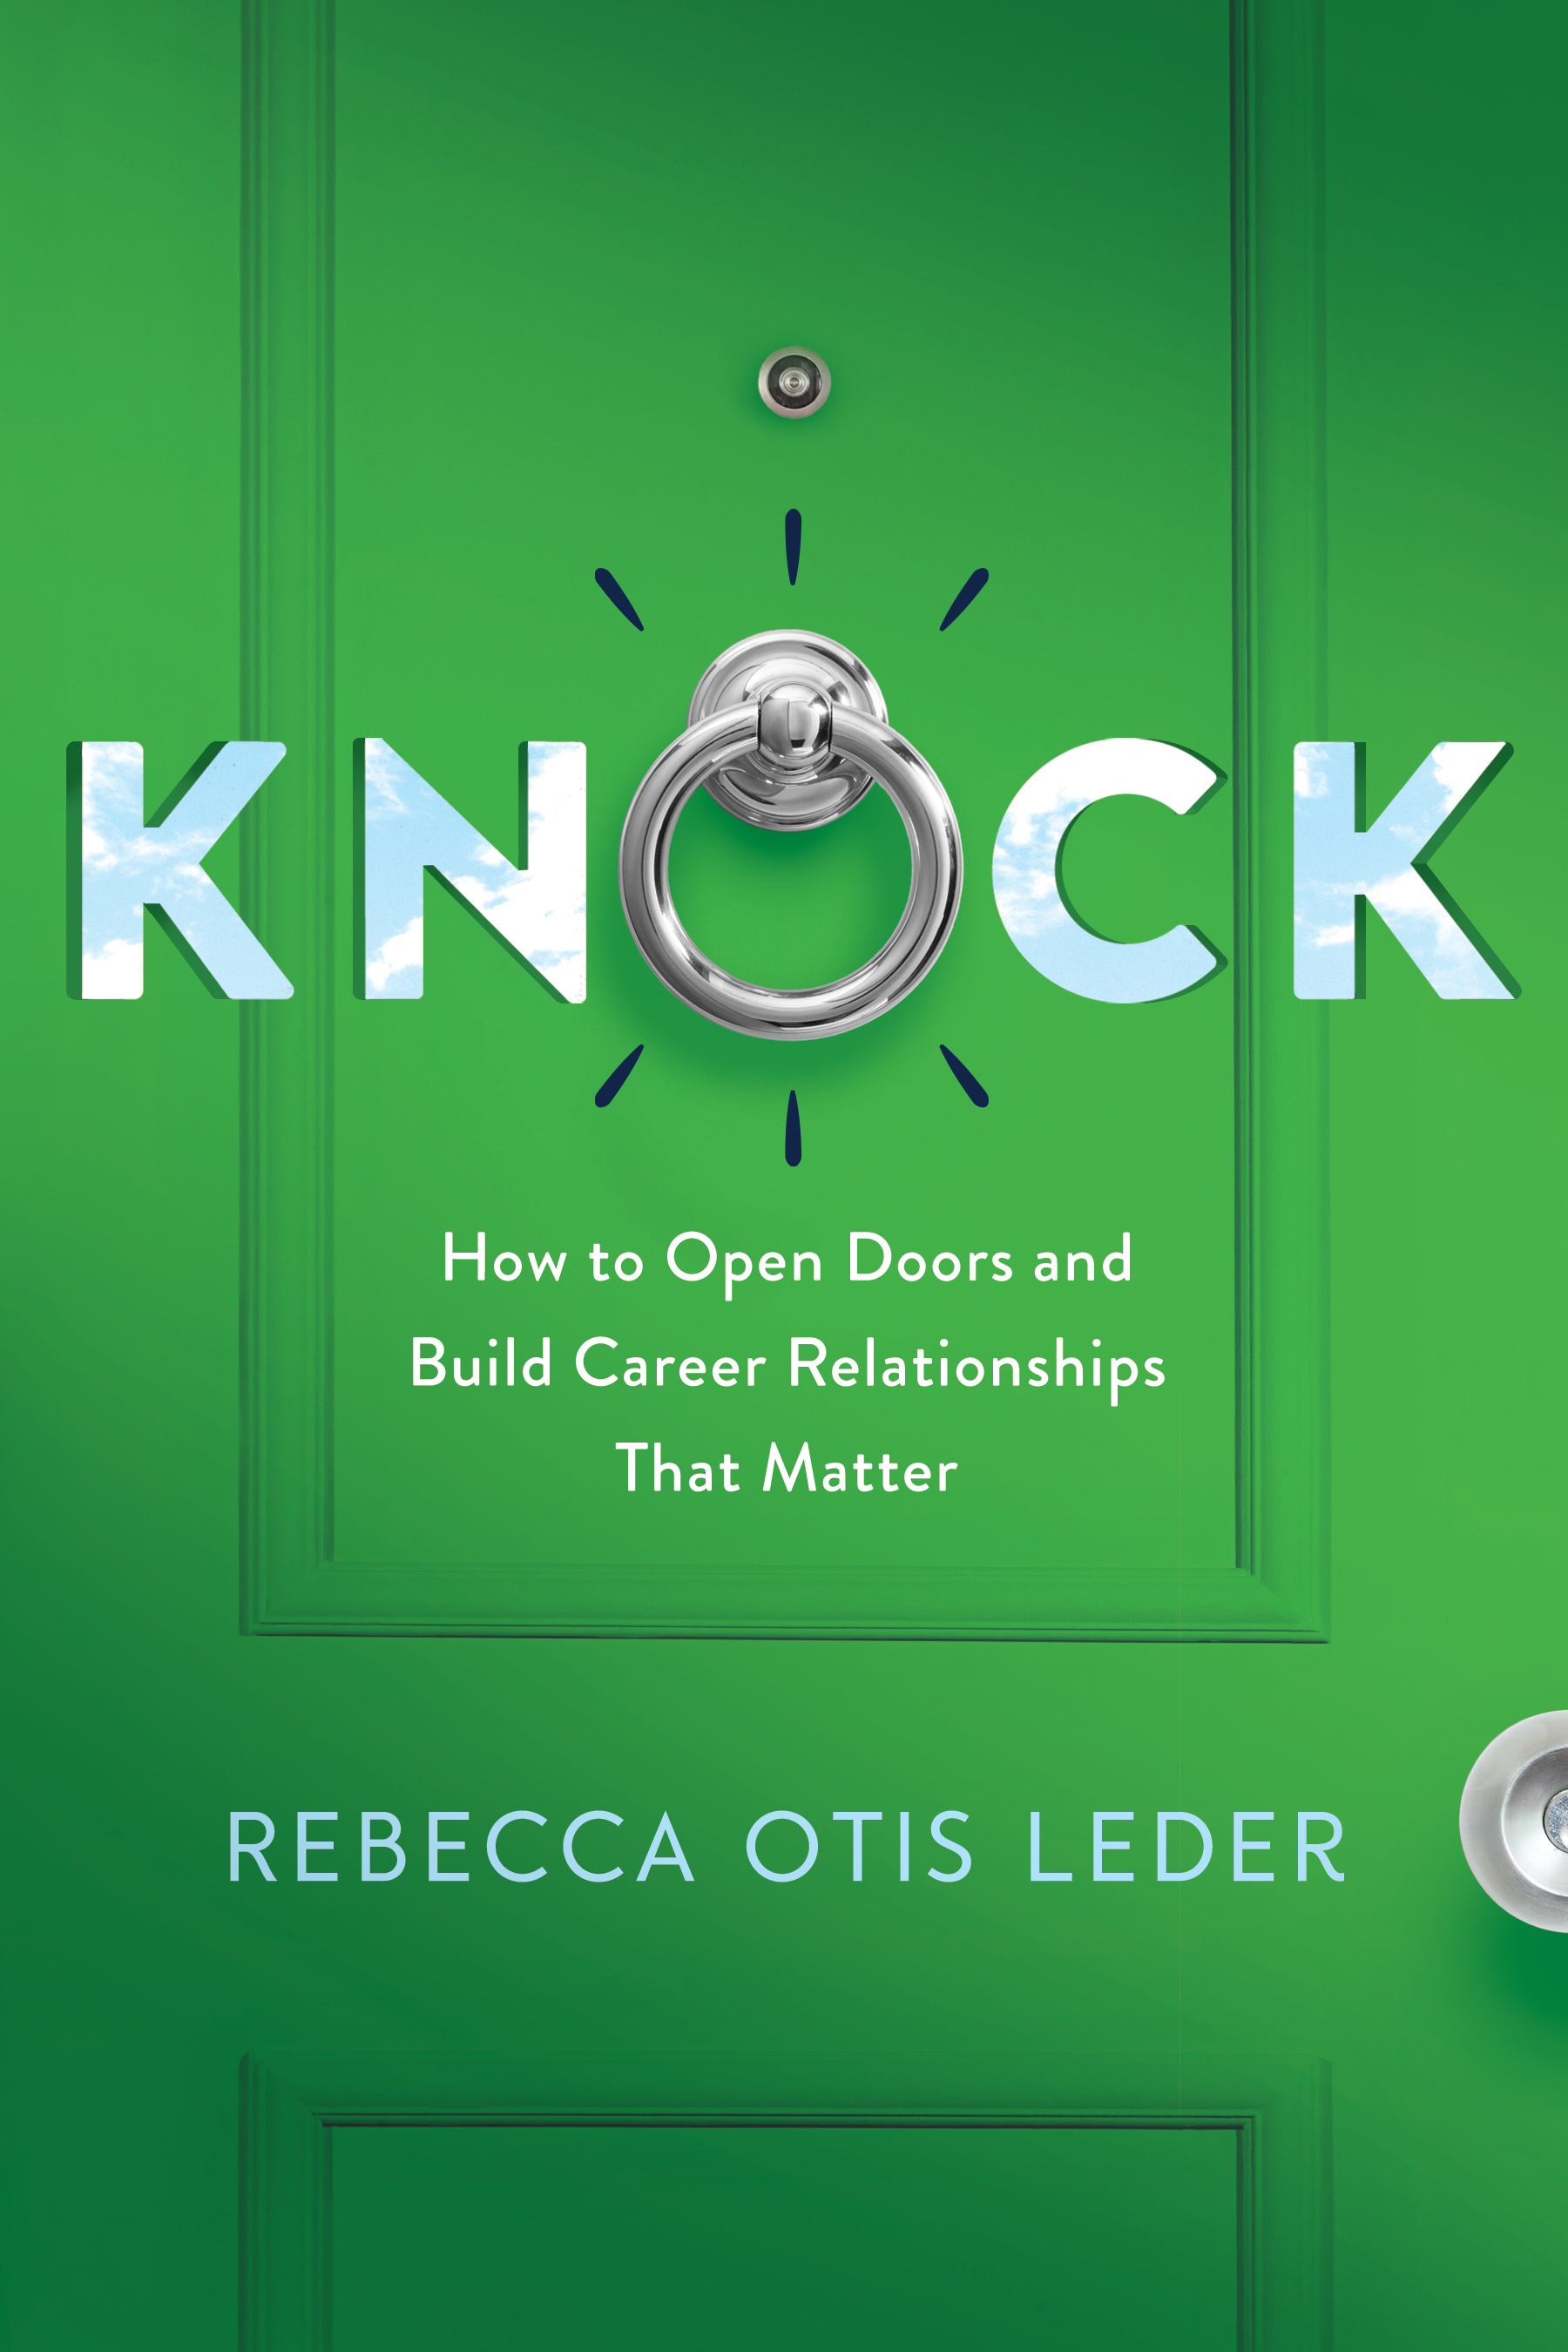 Knock: How to Open Doors and Build Career Relationships That Matter